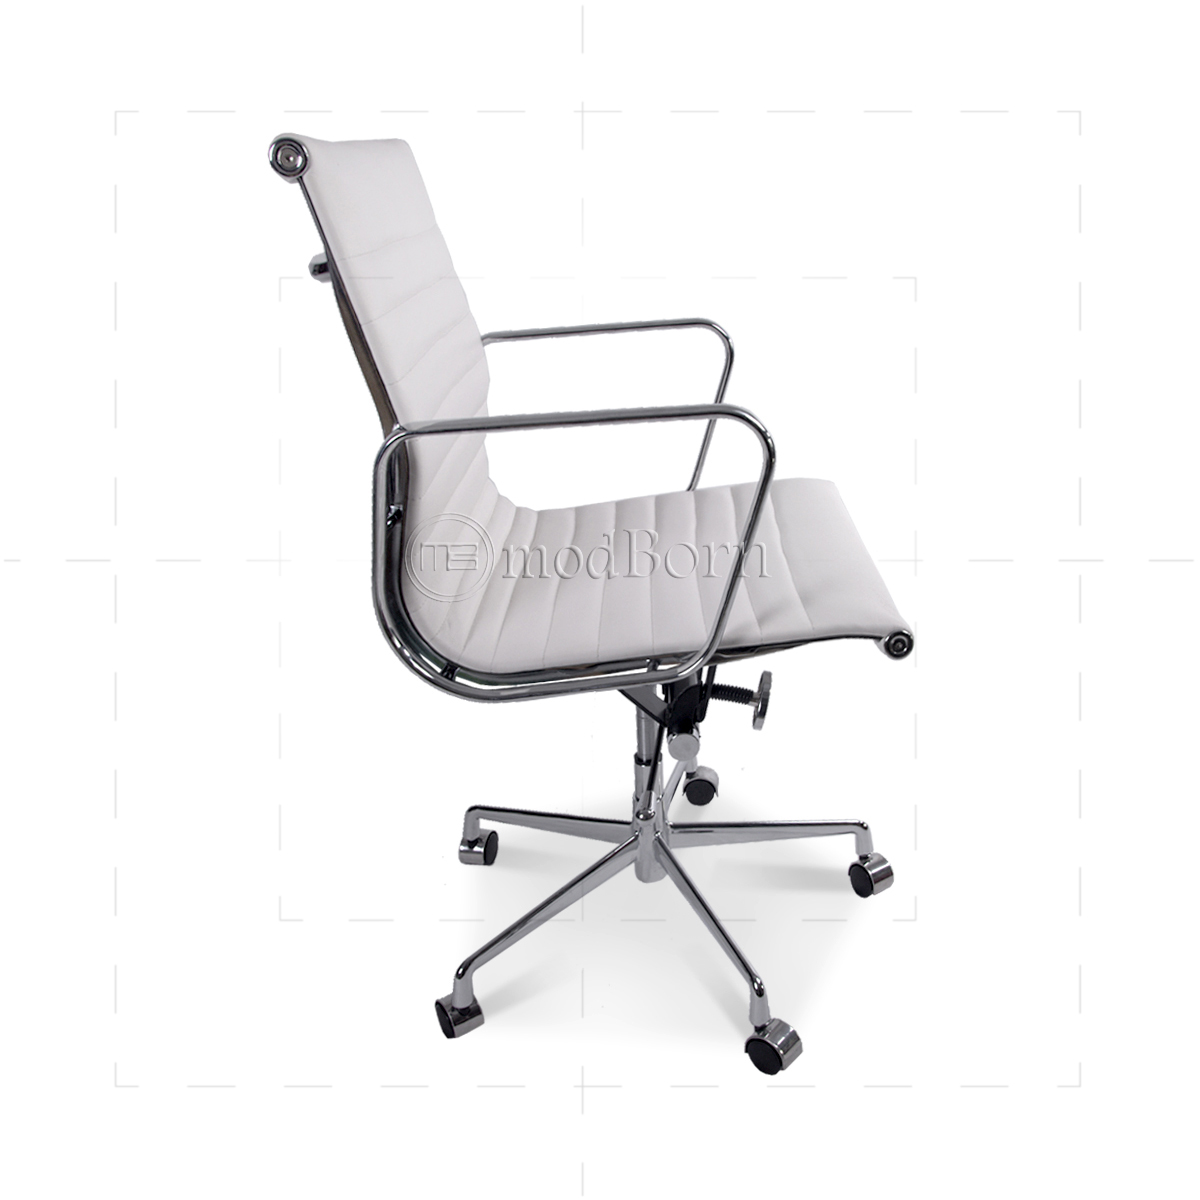 ea117 eames style office chair low back ribbed white leather. Black Bedroom Furniture Sets. Home Design Ideas